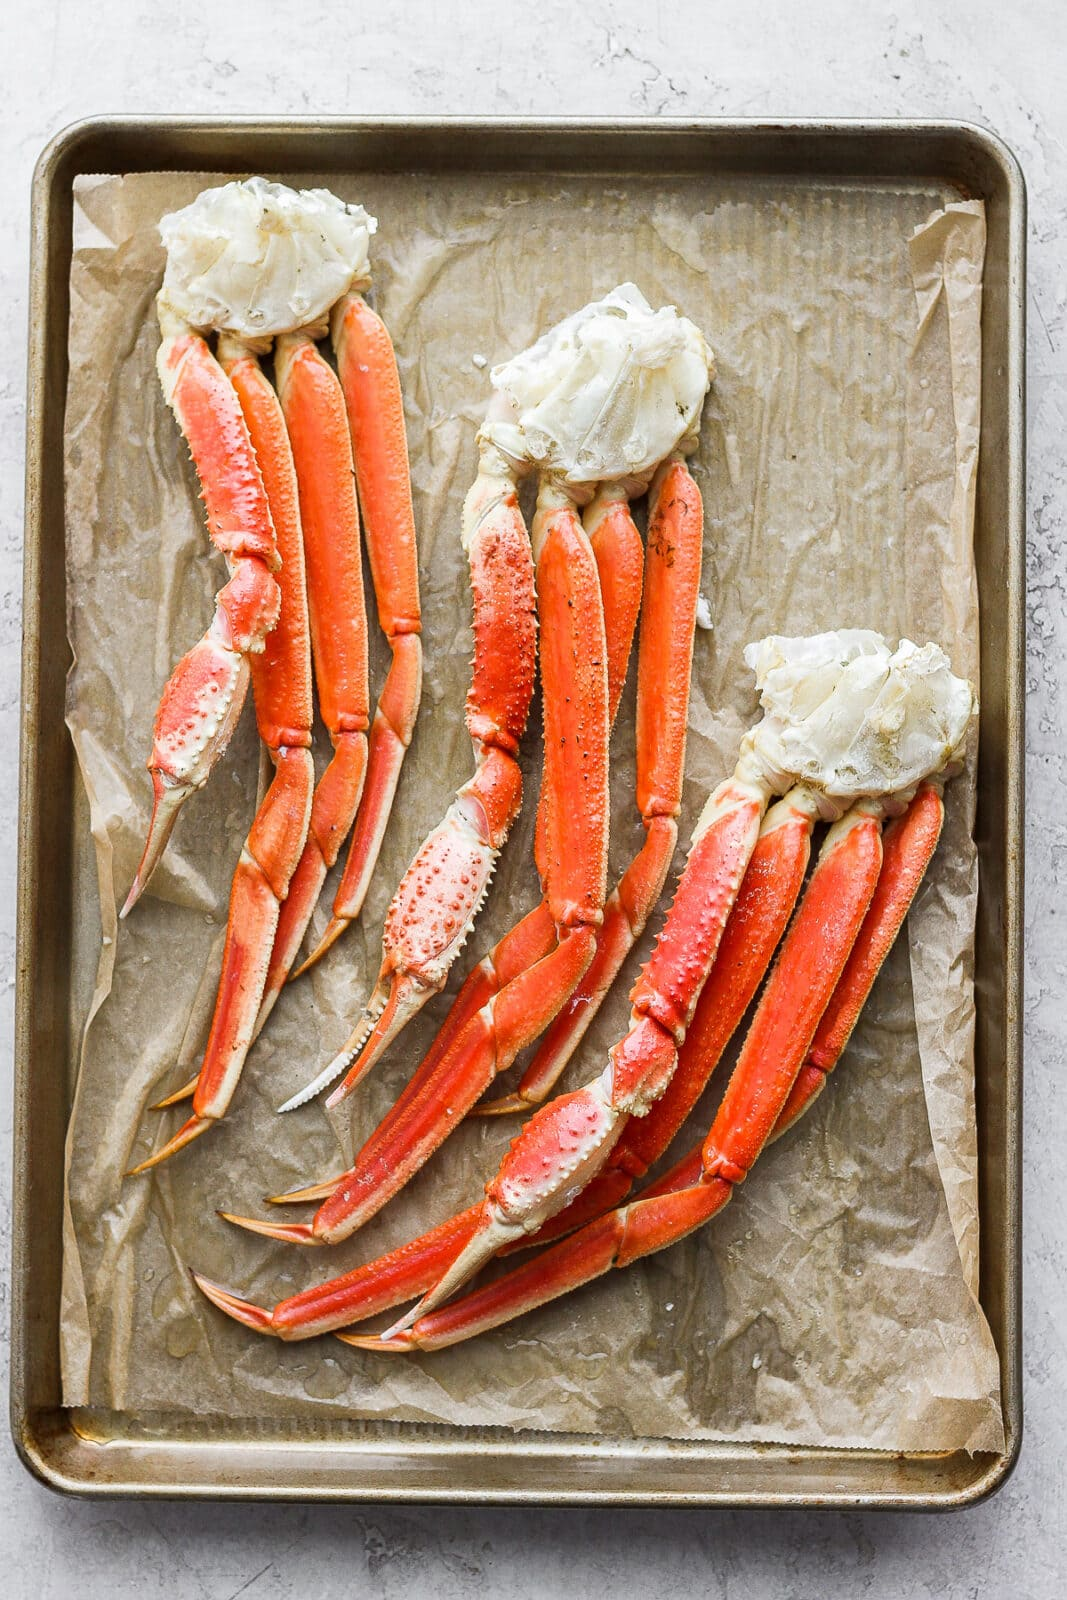 Parchment lined baking sheet with show crab clusters on top.